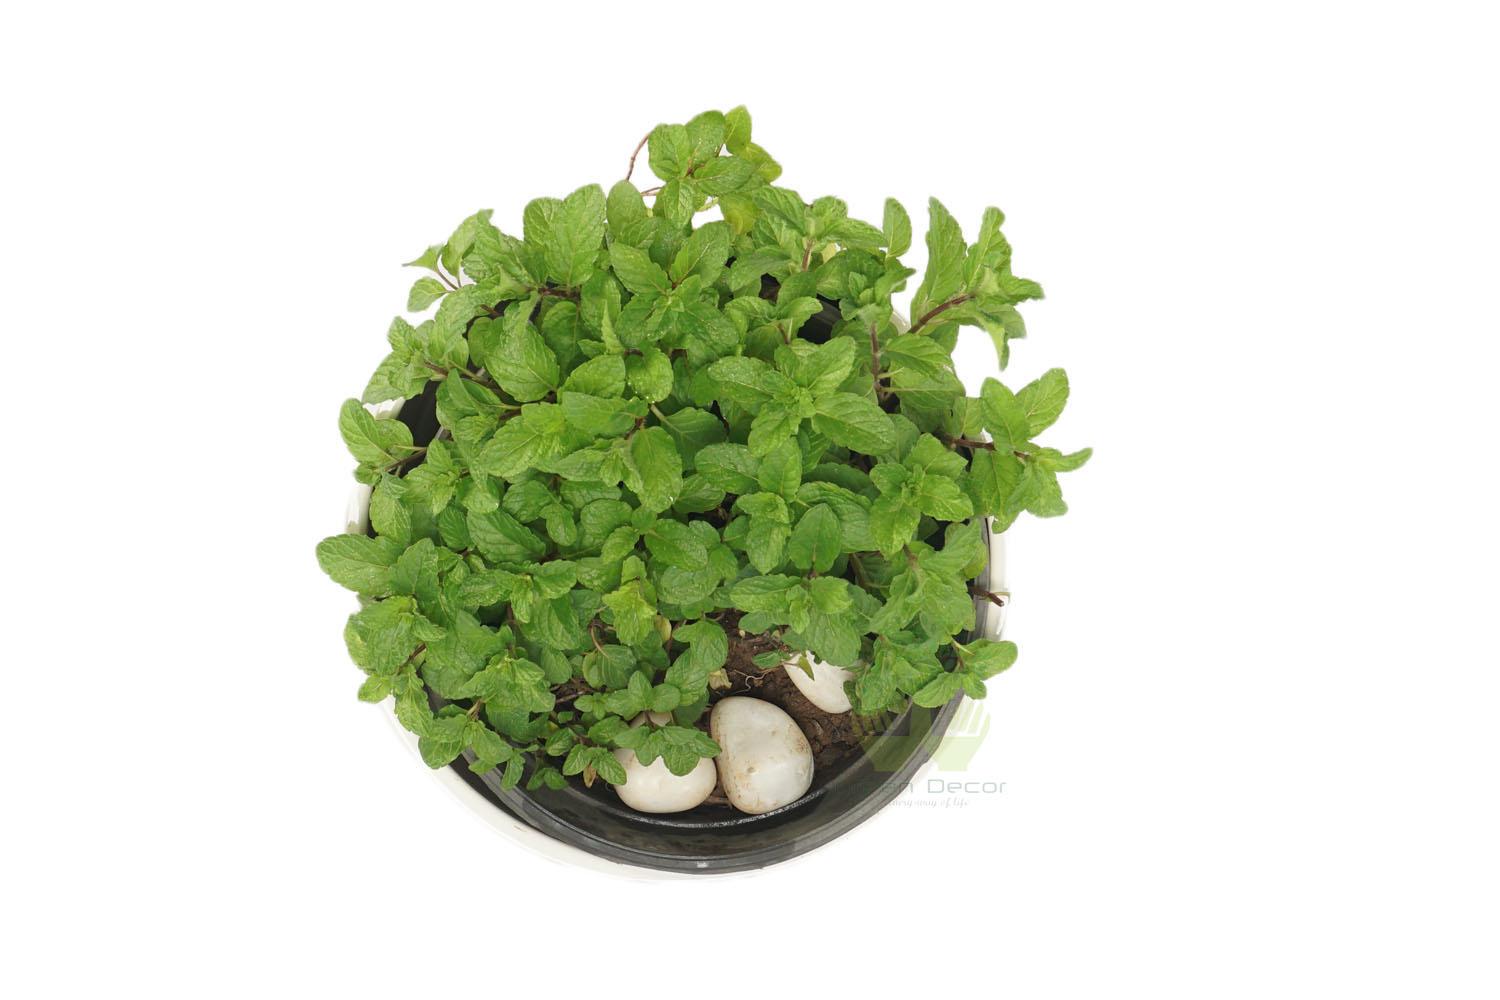 Buy Mint Plants , White Pots and seeds in Delhi NCR by the best online nursery shop Greendecor.